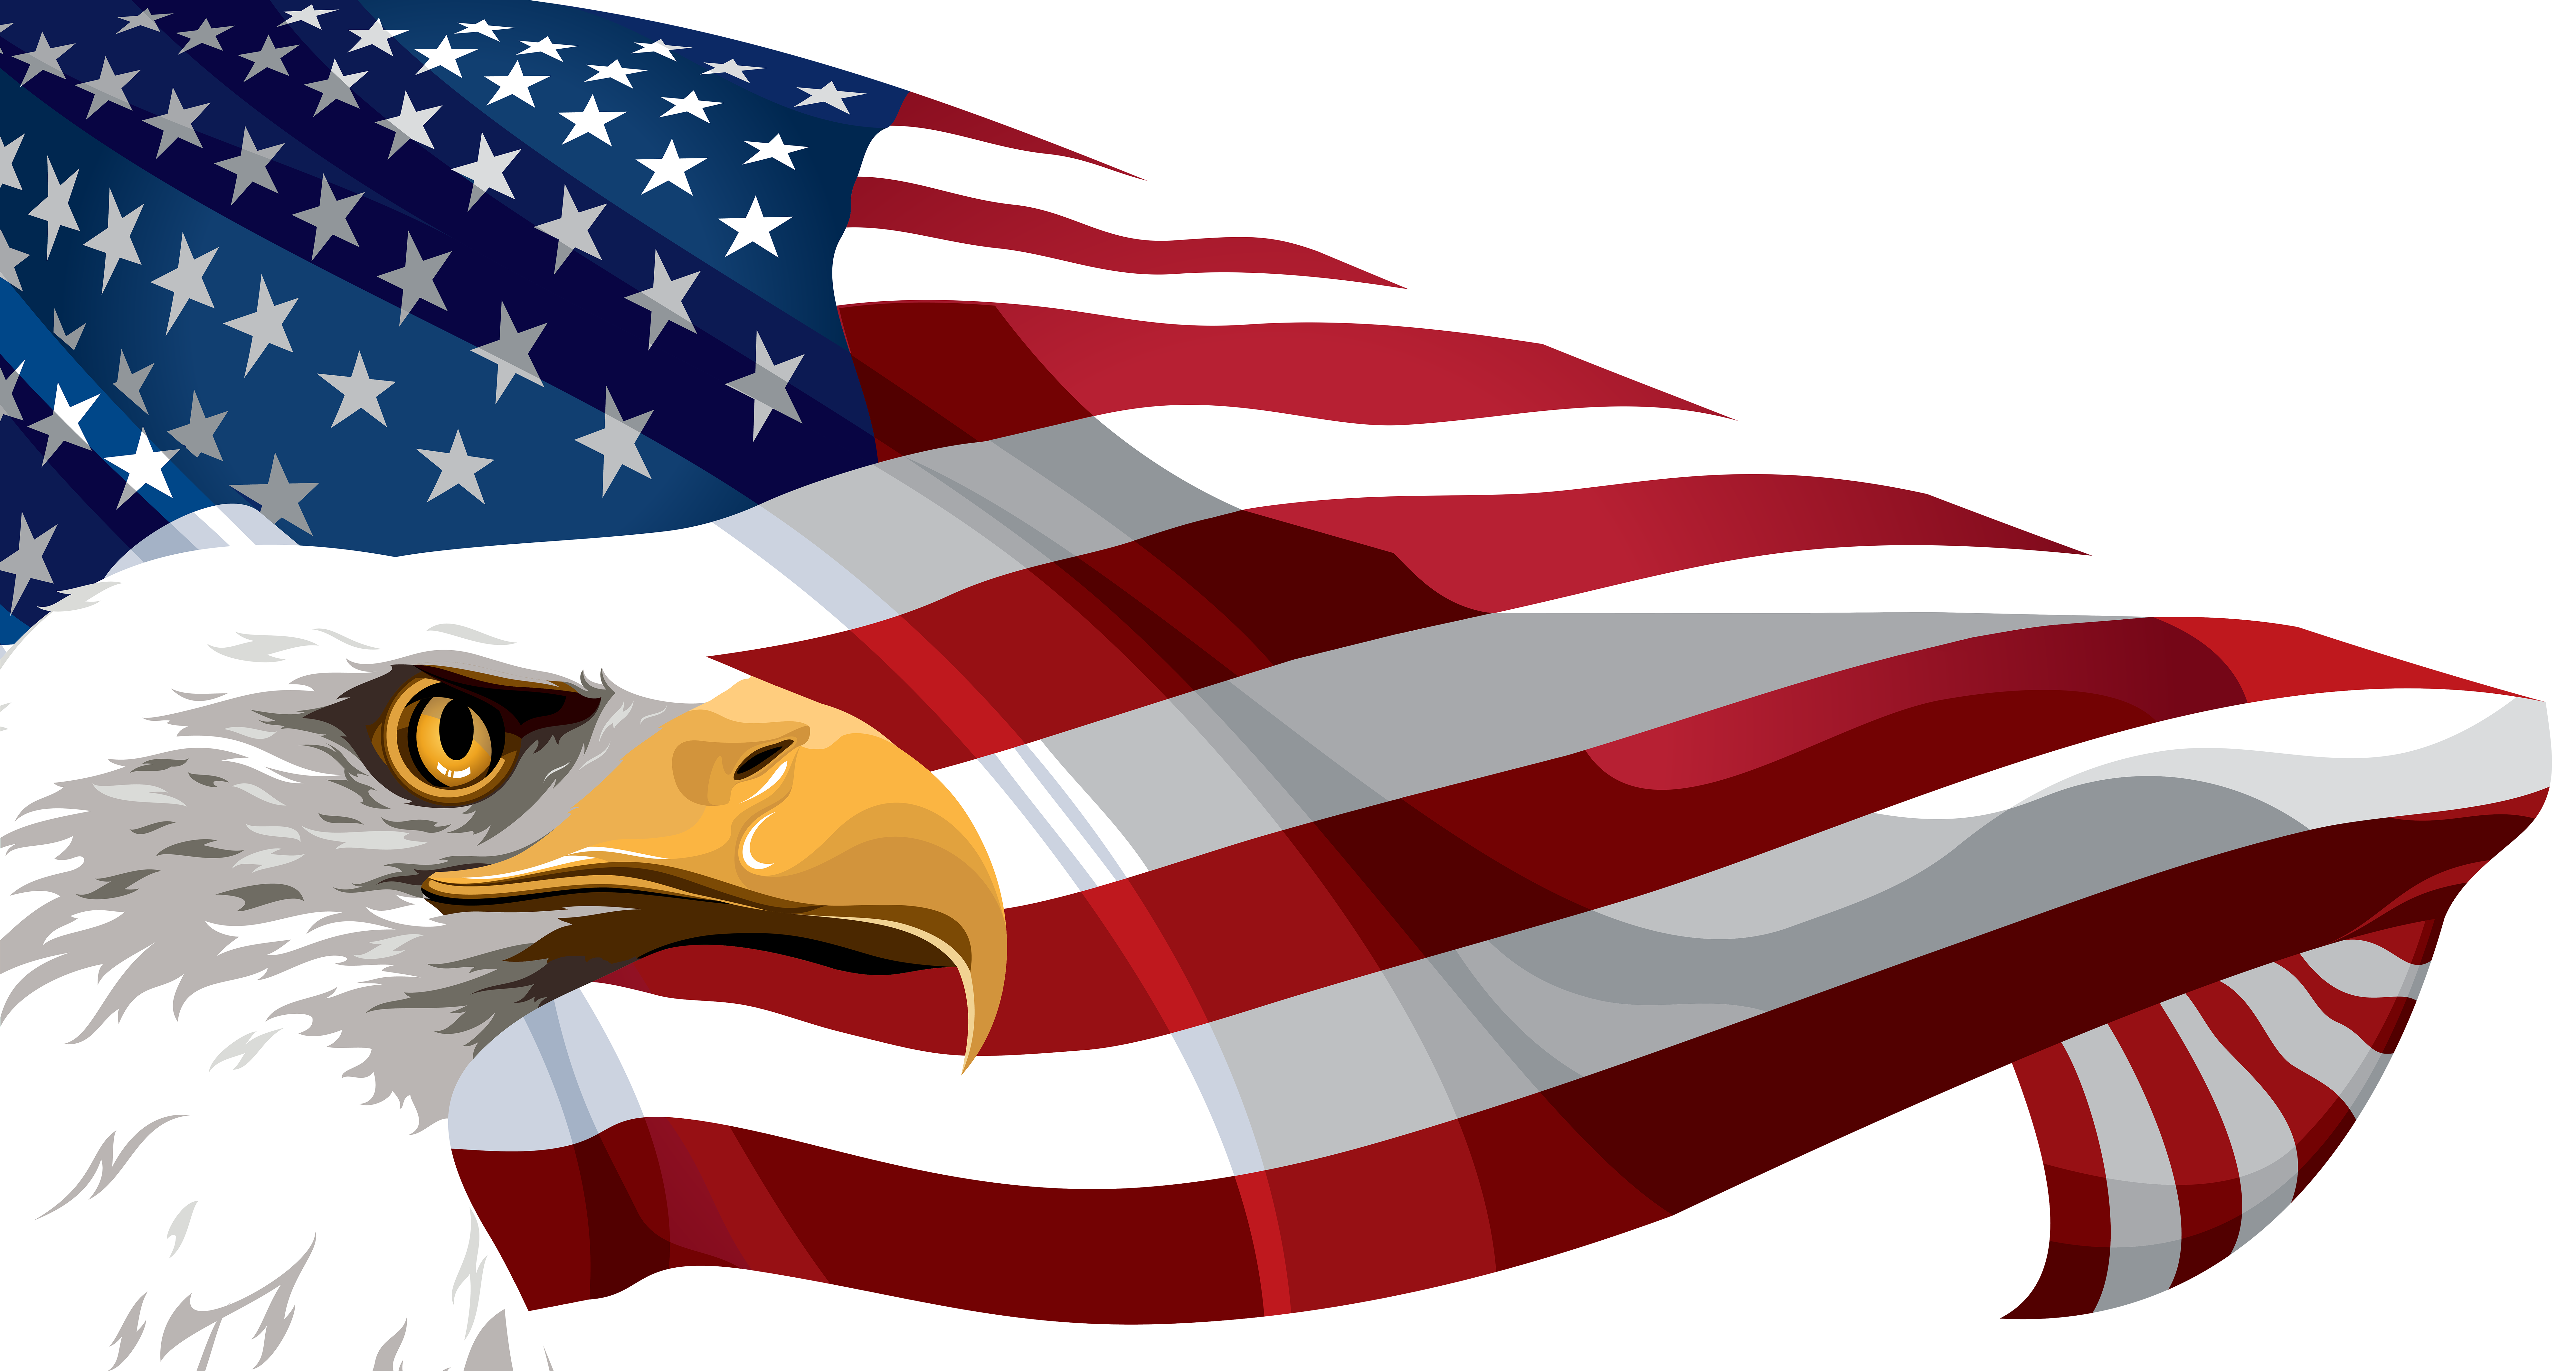 bald eagle clipart cool usa flag png images